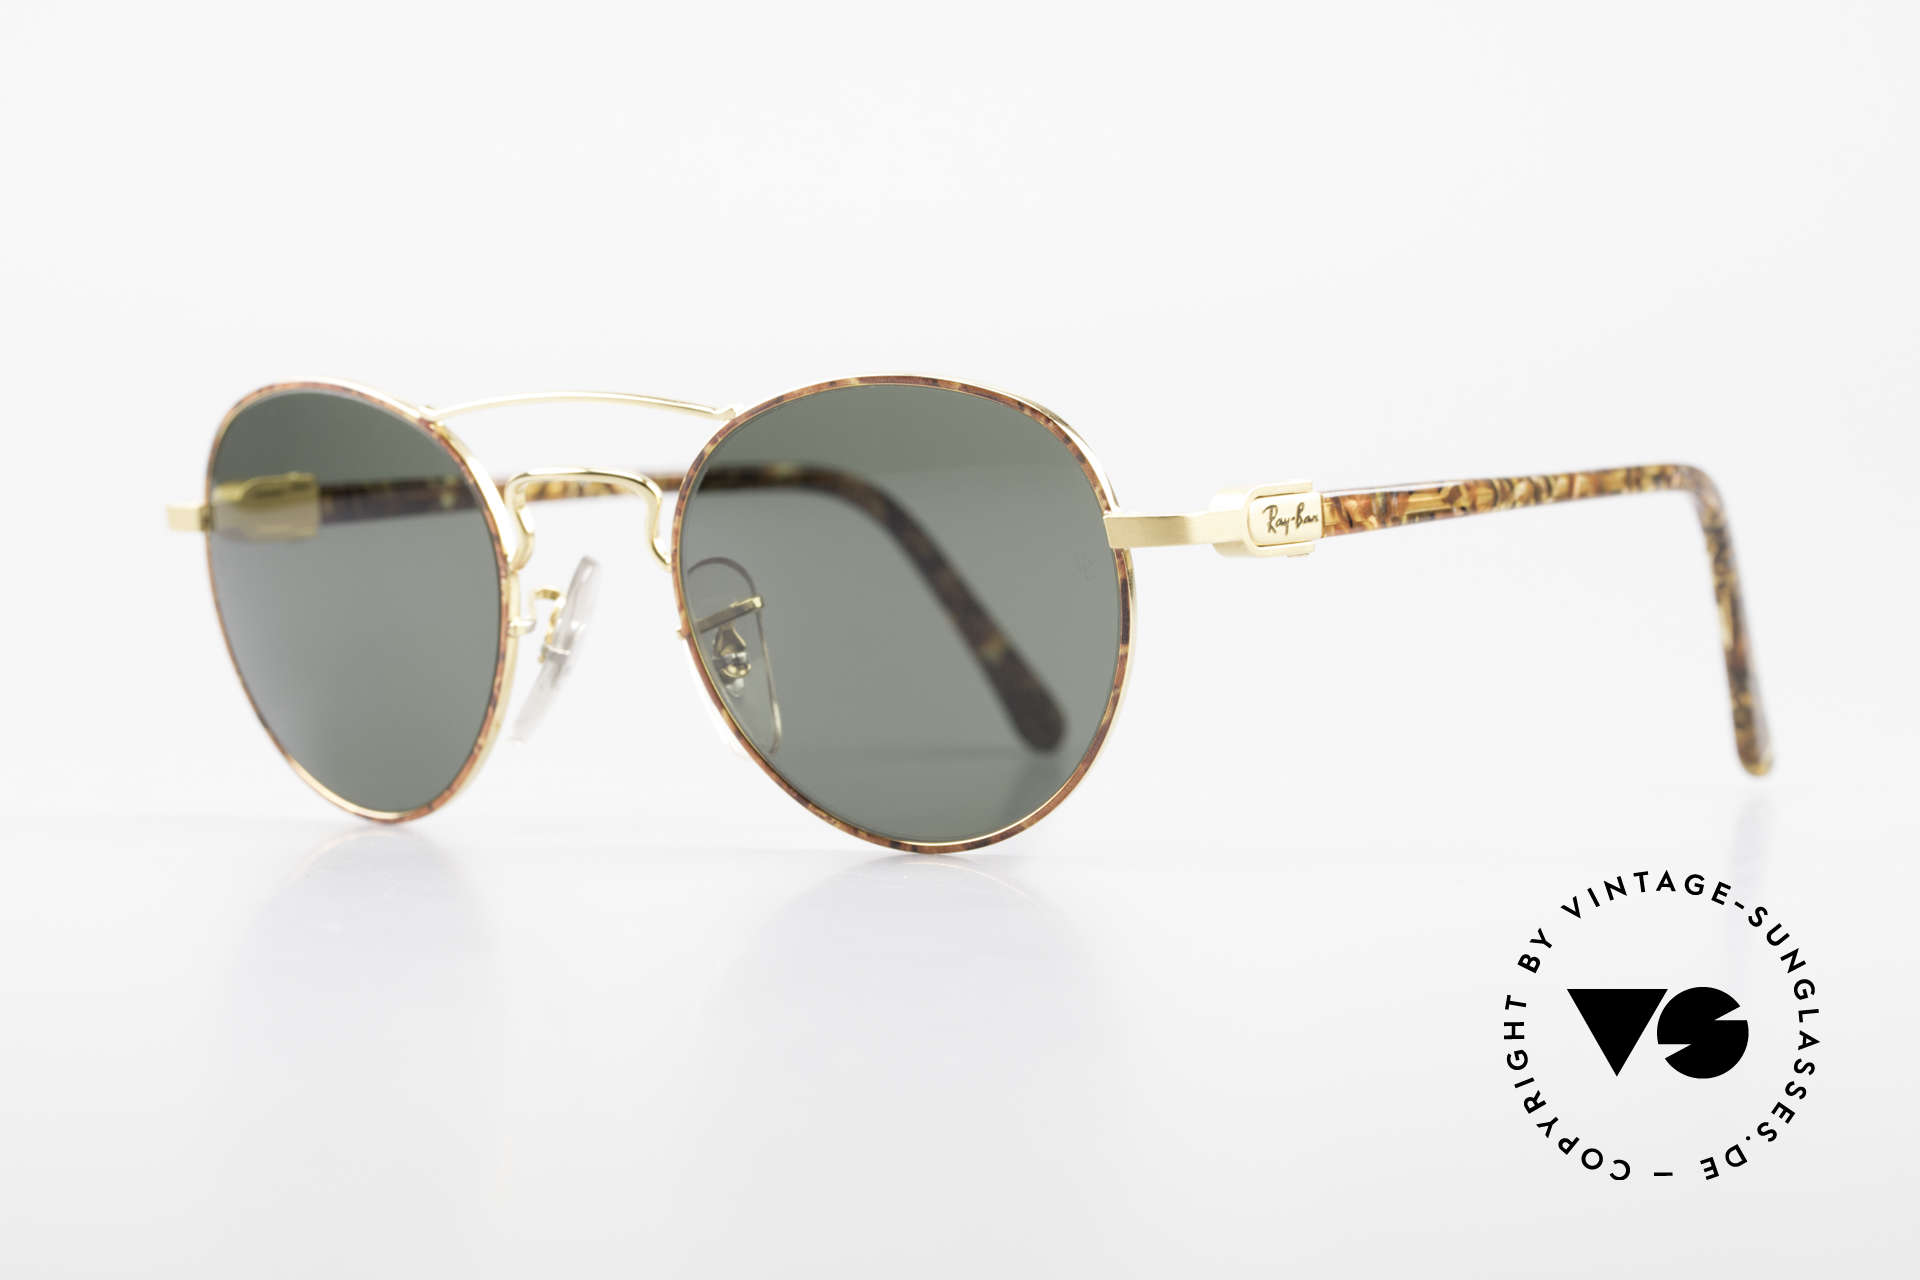 Ray Ban Chaos Round 90's B&L USA Shades W2005, finest quality from RAY-BAN, B&L - made in the USA, Made for Men and Women